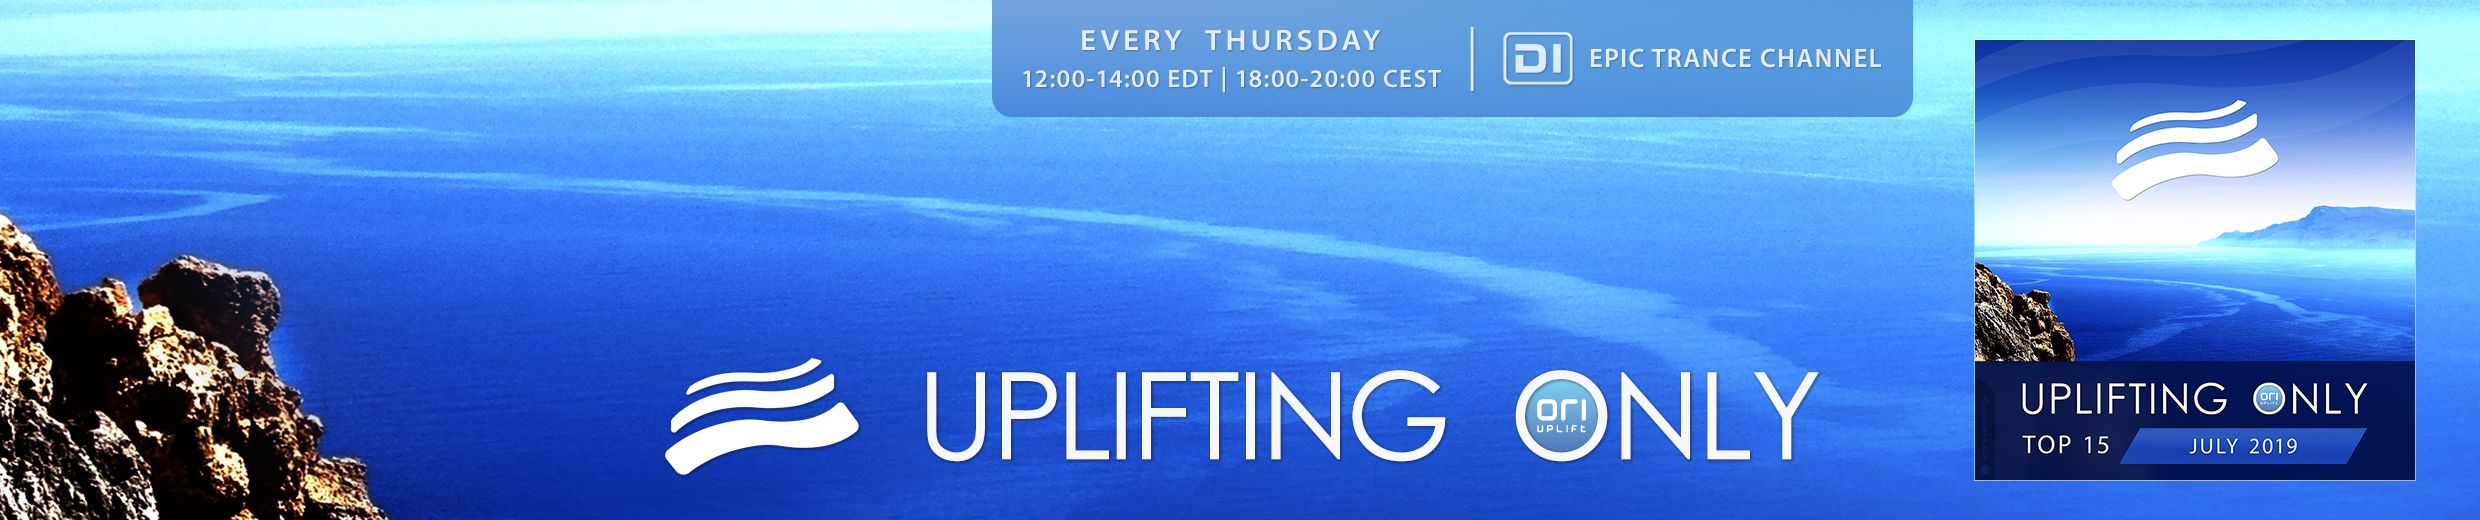 Uplifting Only 053 (Feb 13, 2014) - Eurofest Lineup Special by Ori